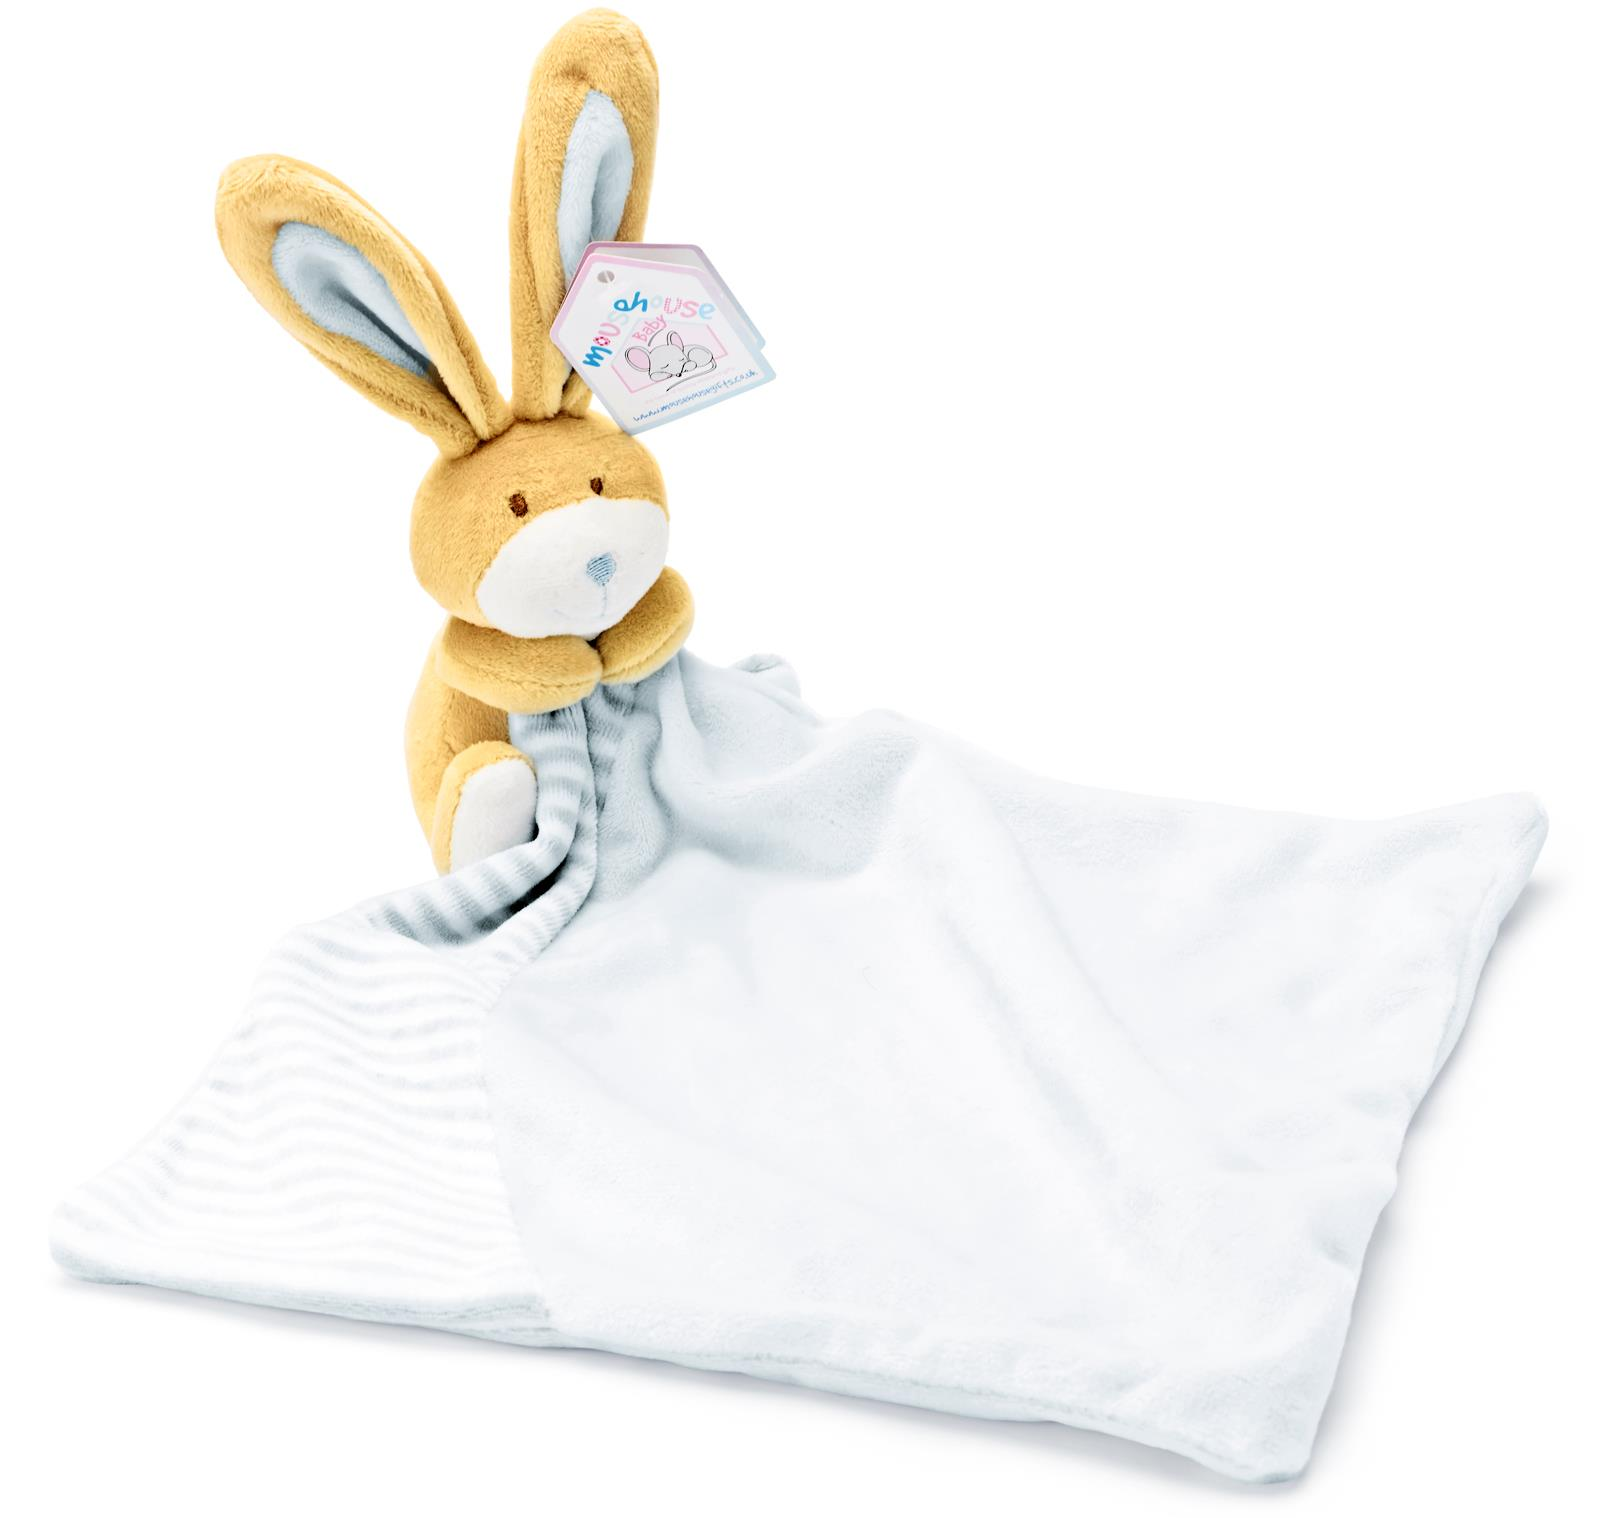 Personalised Baby Comforter,Embroidered Gift,Bunny Rabbit Comfort Blanket Gifts